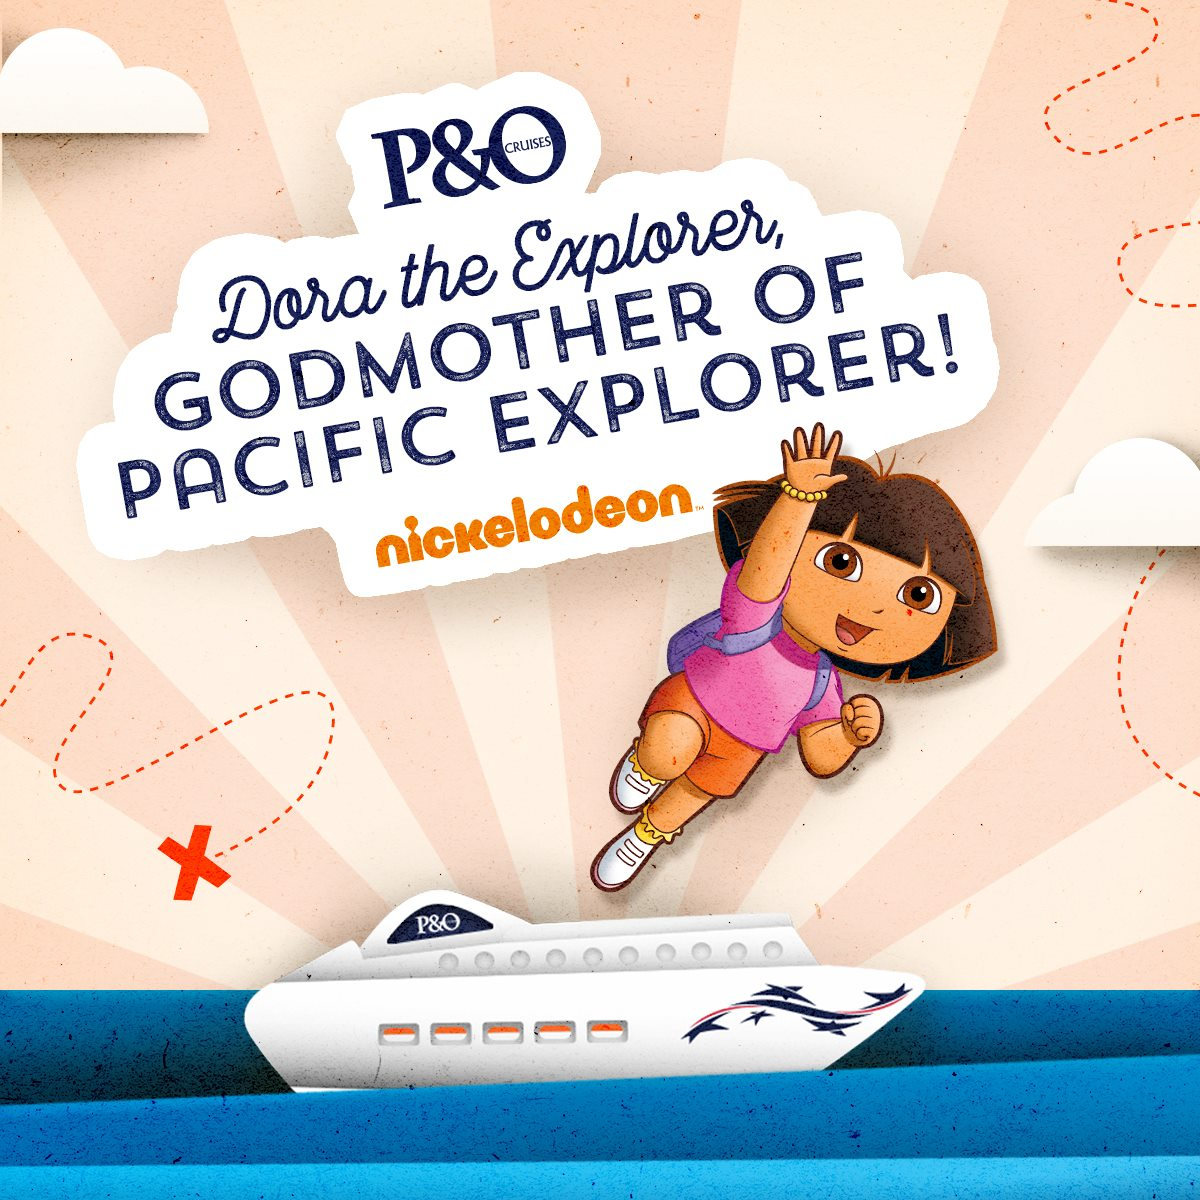 Dora The Explorer Named Godmother For Pacific Explorer